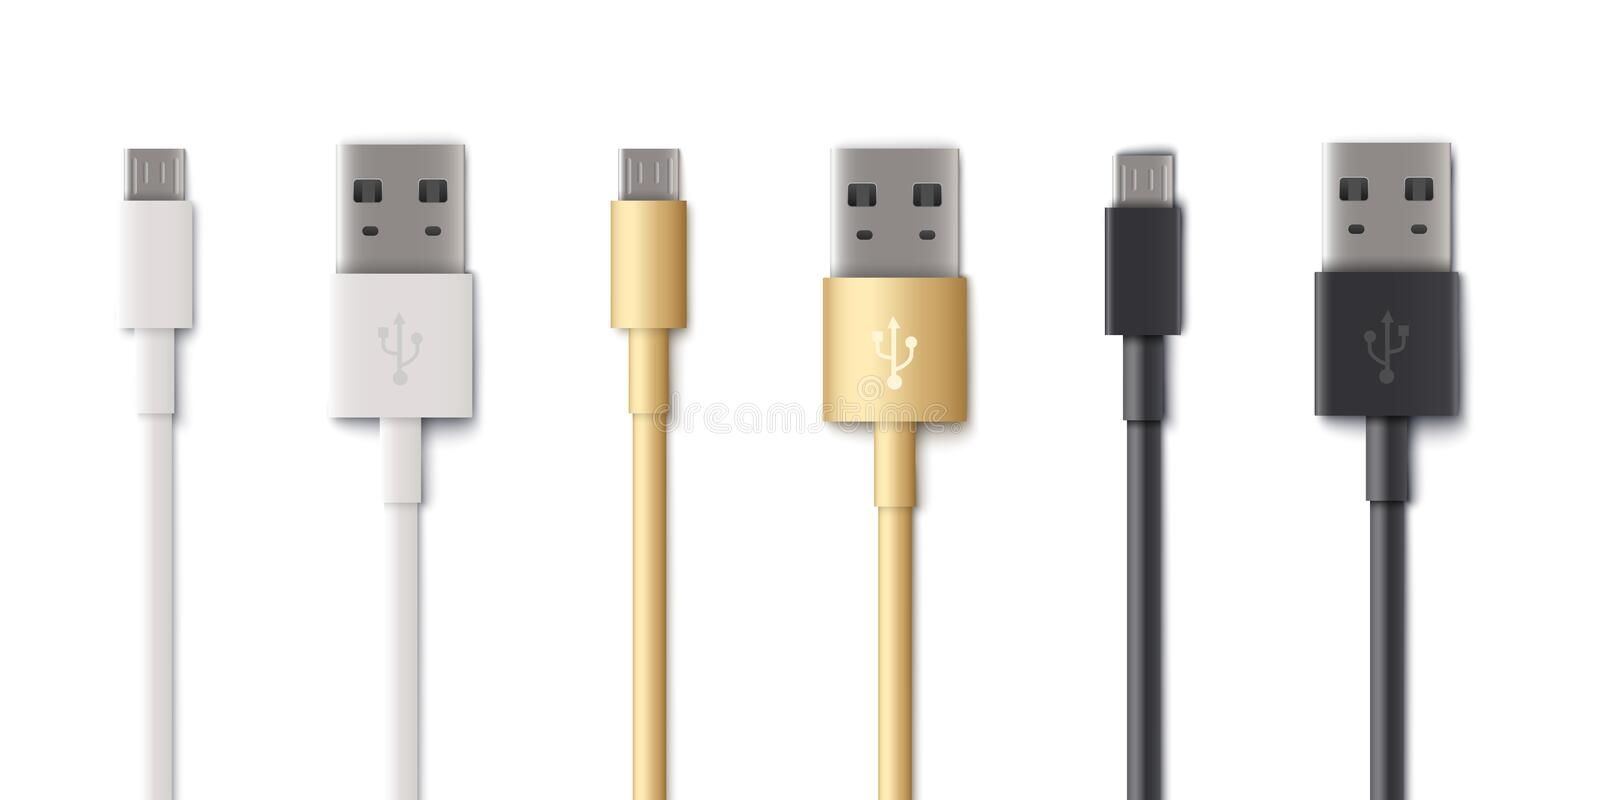 USB type A, B and type C plugs or computer cable connectors illustration isolated. Standart USB type A, B and type C plugs or universal computer cable vector illustration